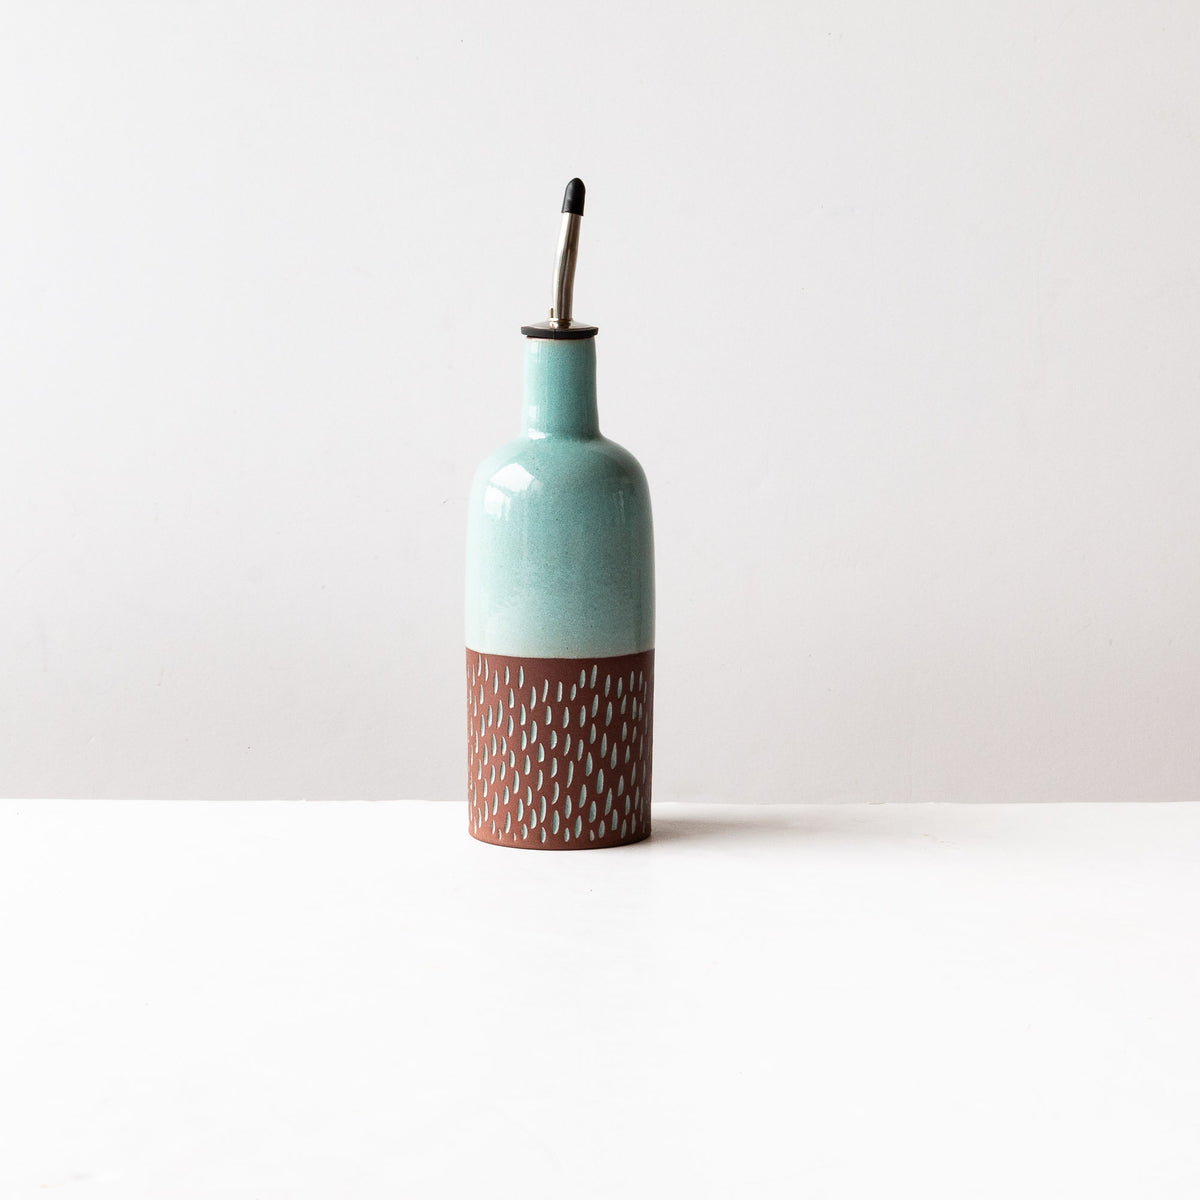 Drop Pattern Oil Dispenser Bottle - Handmade in Dark Red Clay Pottery - Sold by Chic & Basta